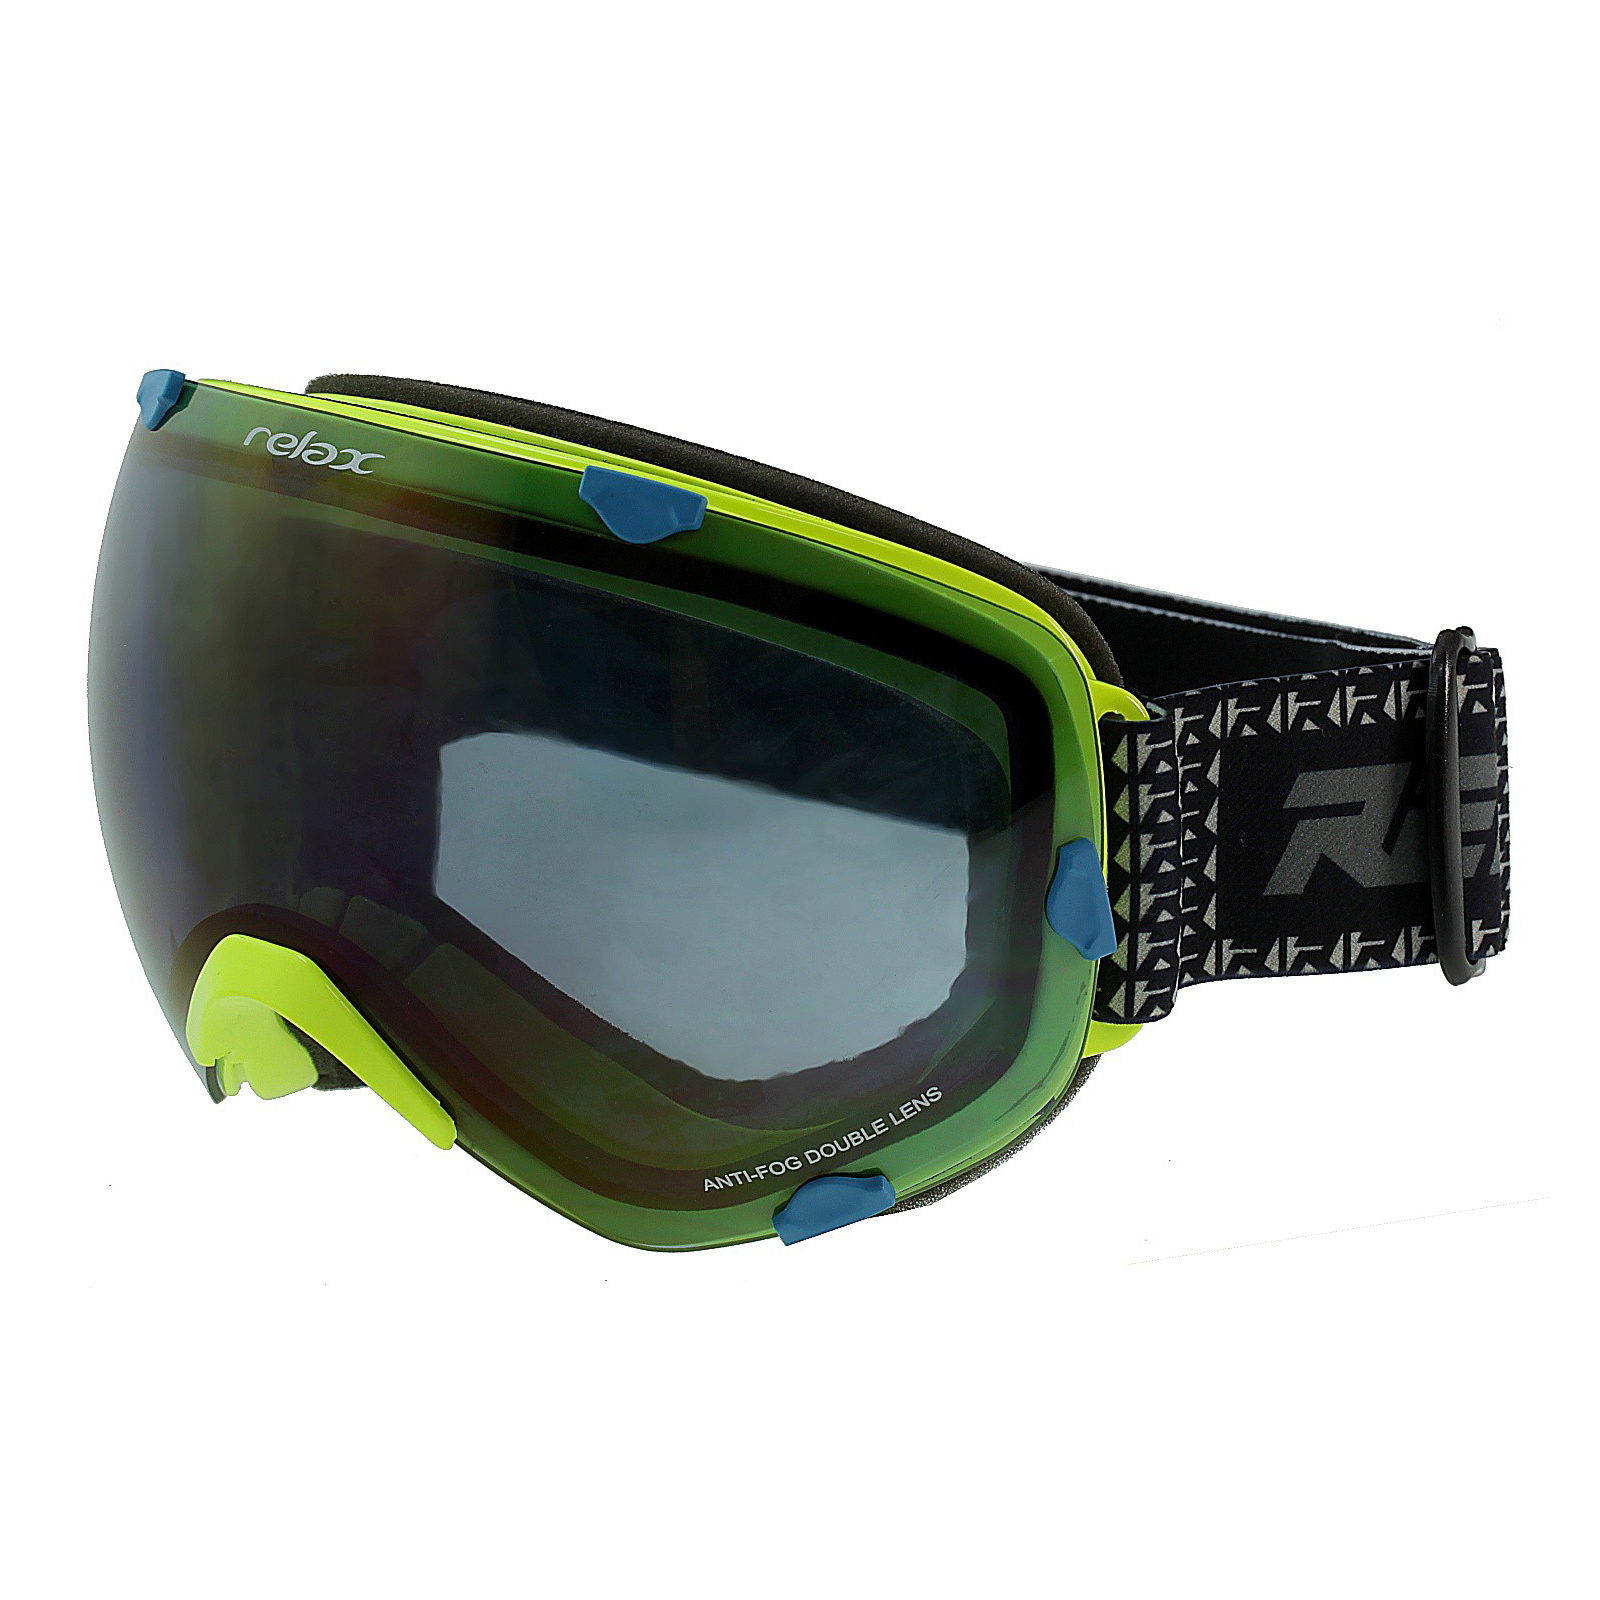 RELAX Hypersonic Goggles